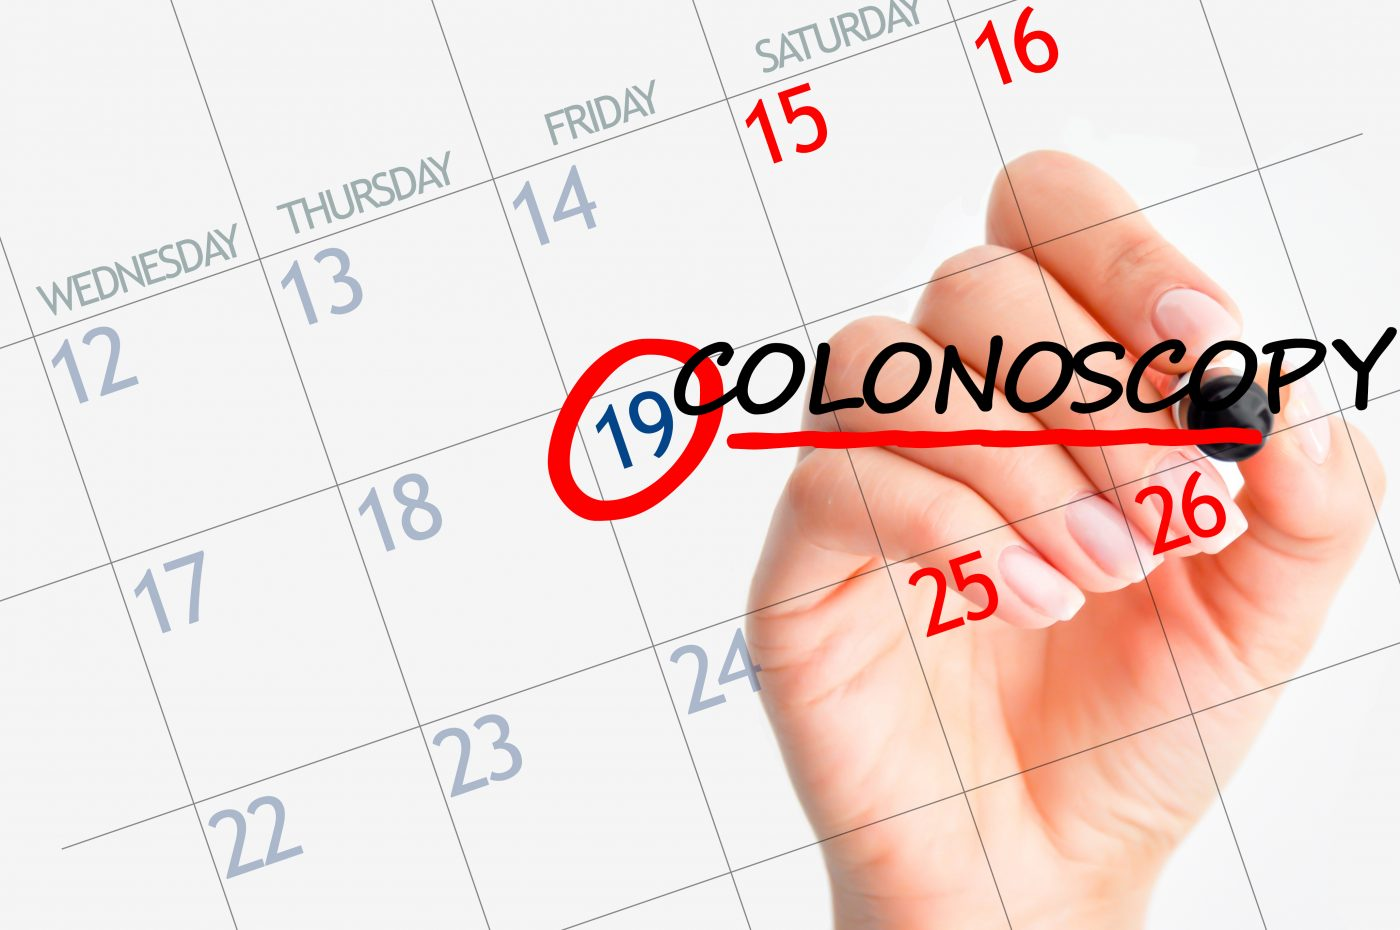 NYU Langone Gastroenterologist Offers Recommendations for Colon Cancer Prevention